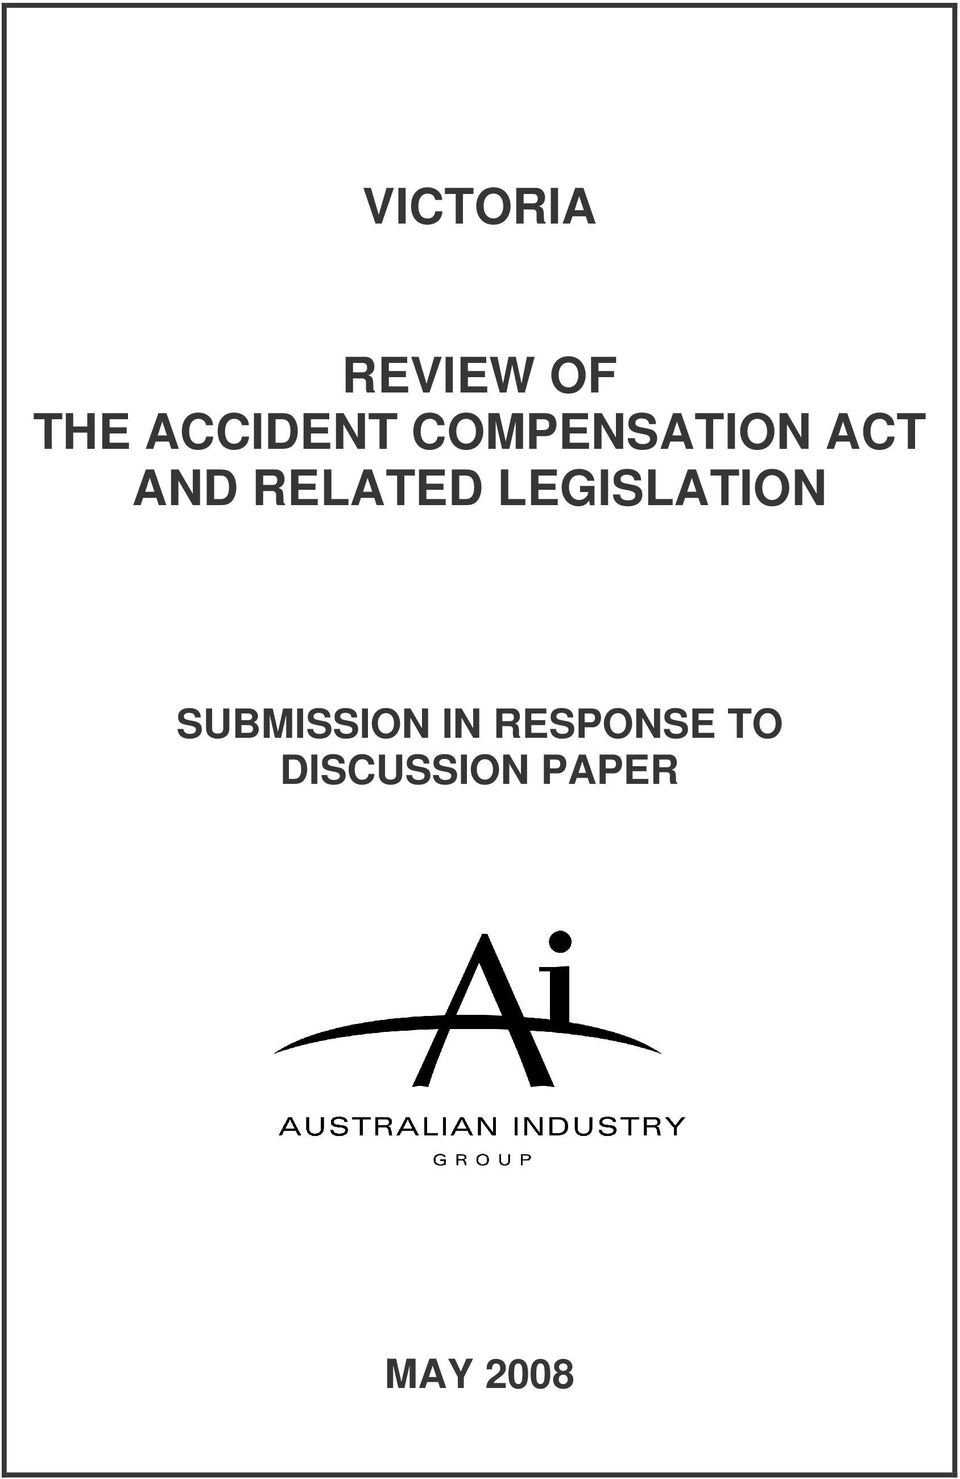 RELATED LEGISLATION SUBMISSION